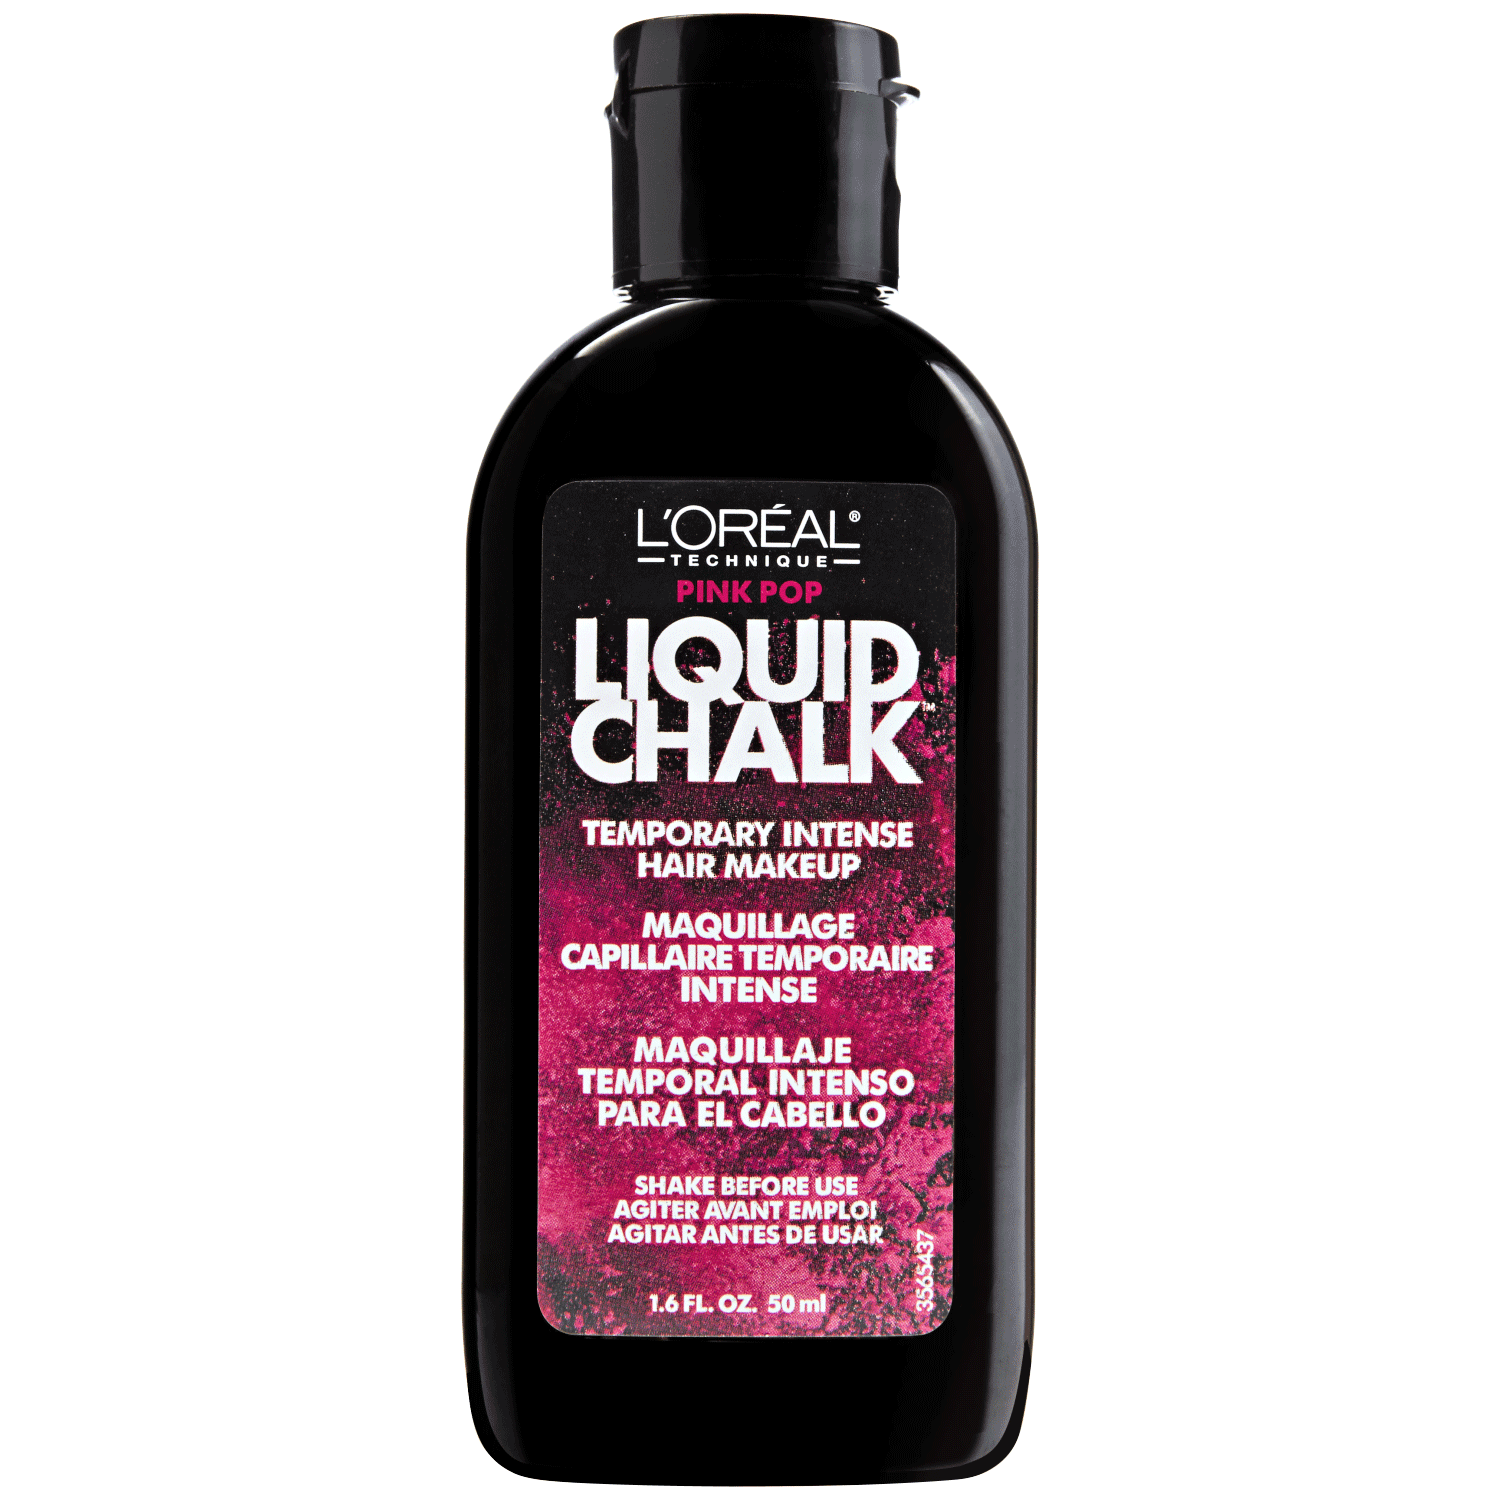 Pink Pop Liquid Chalk Temporary Intense Hair Makeup